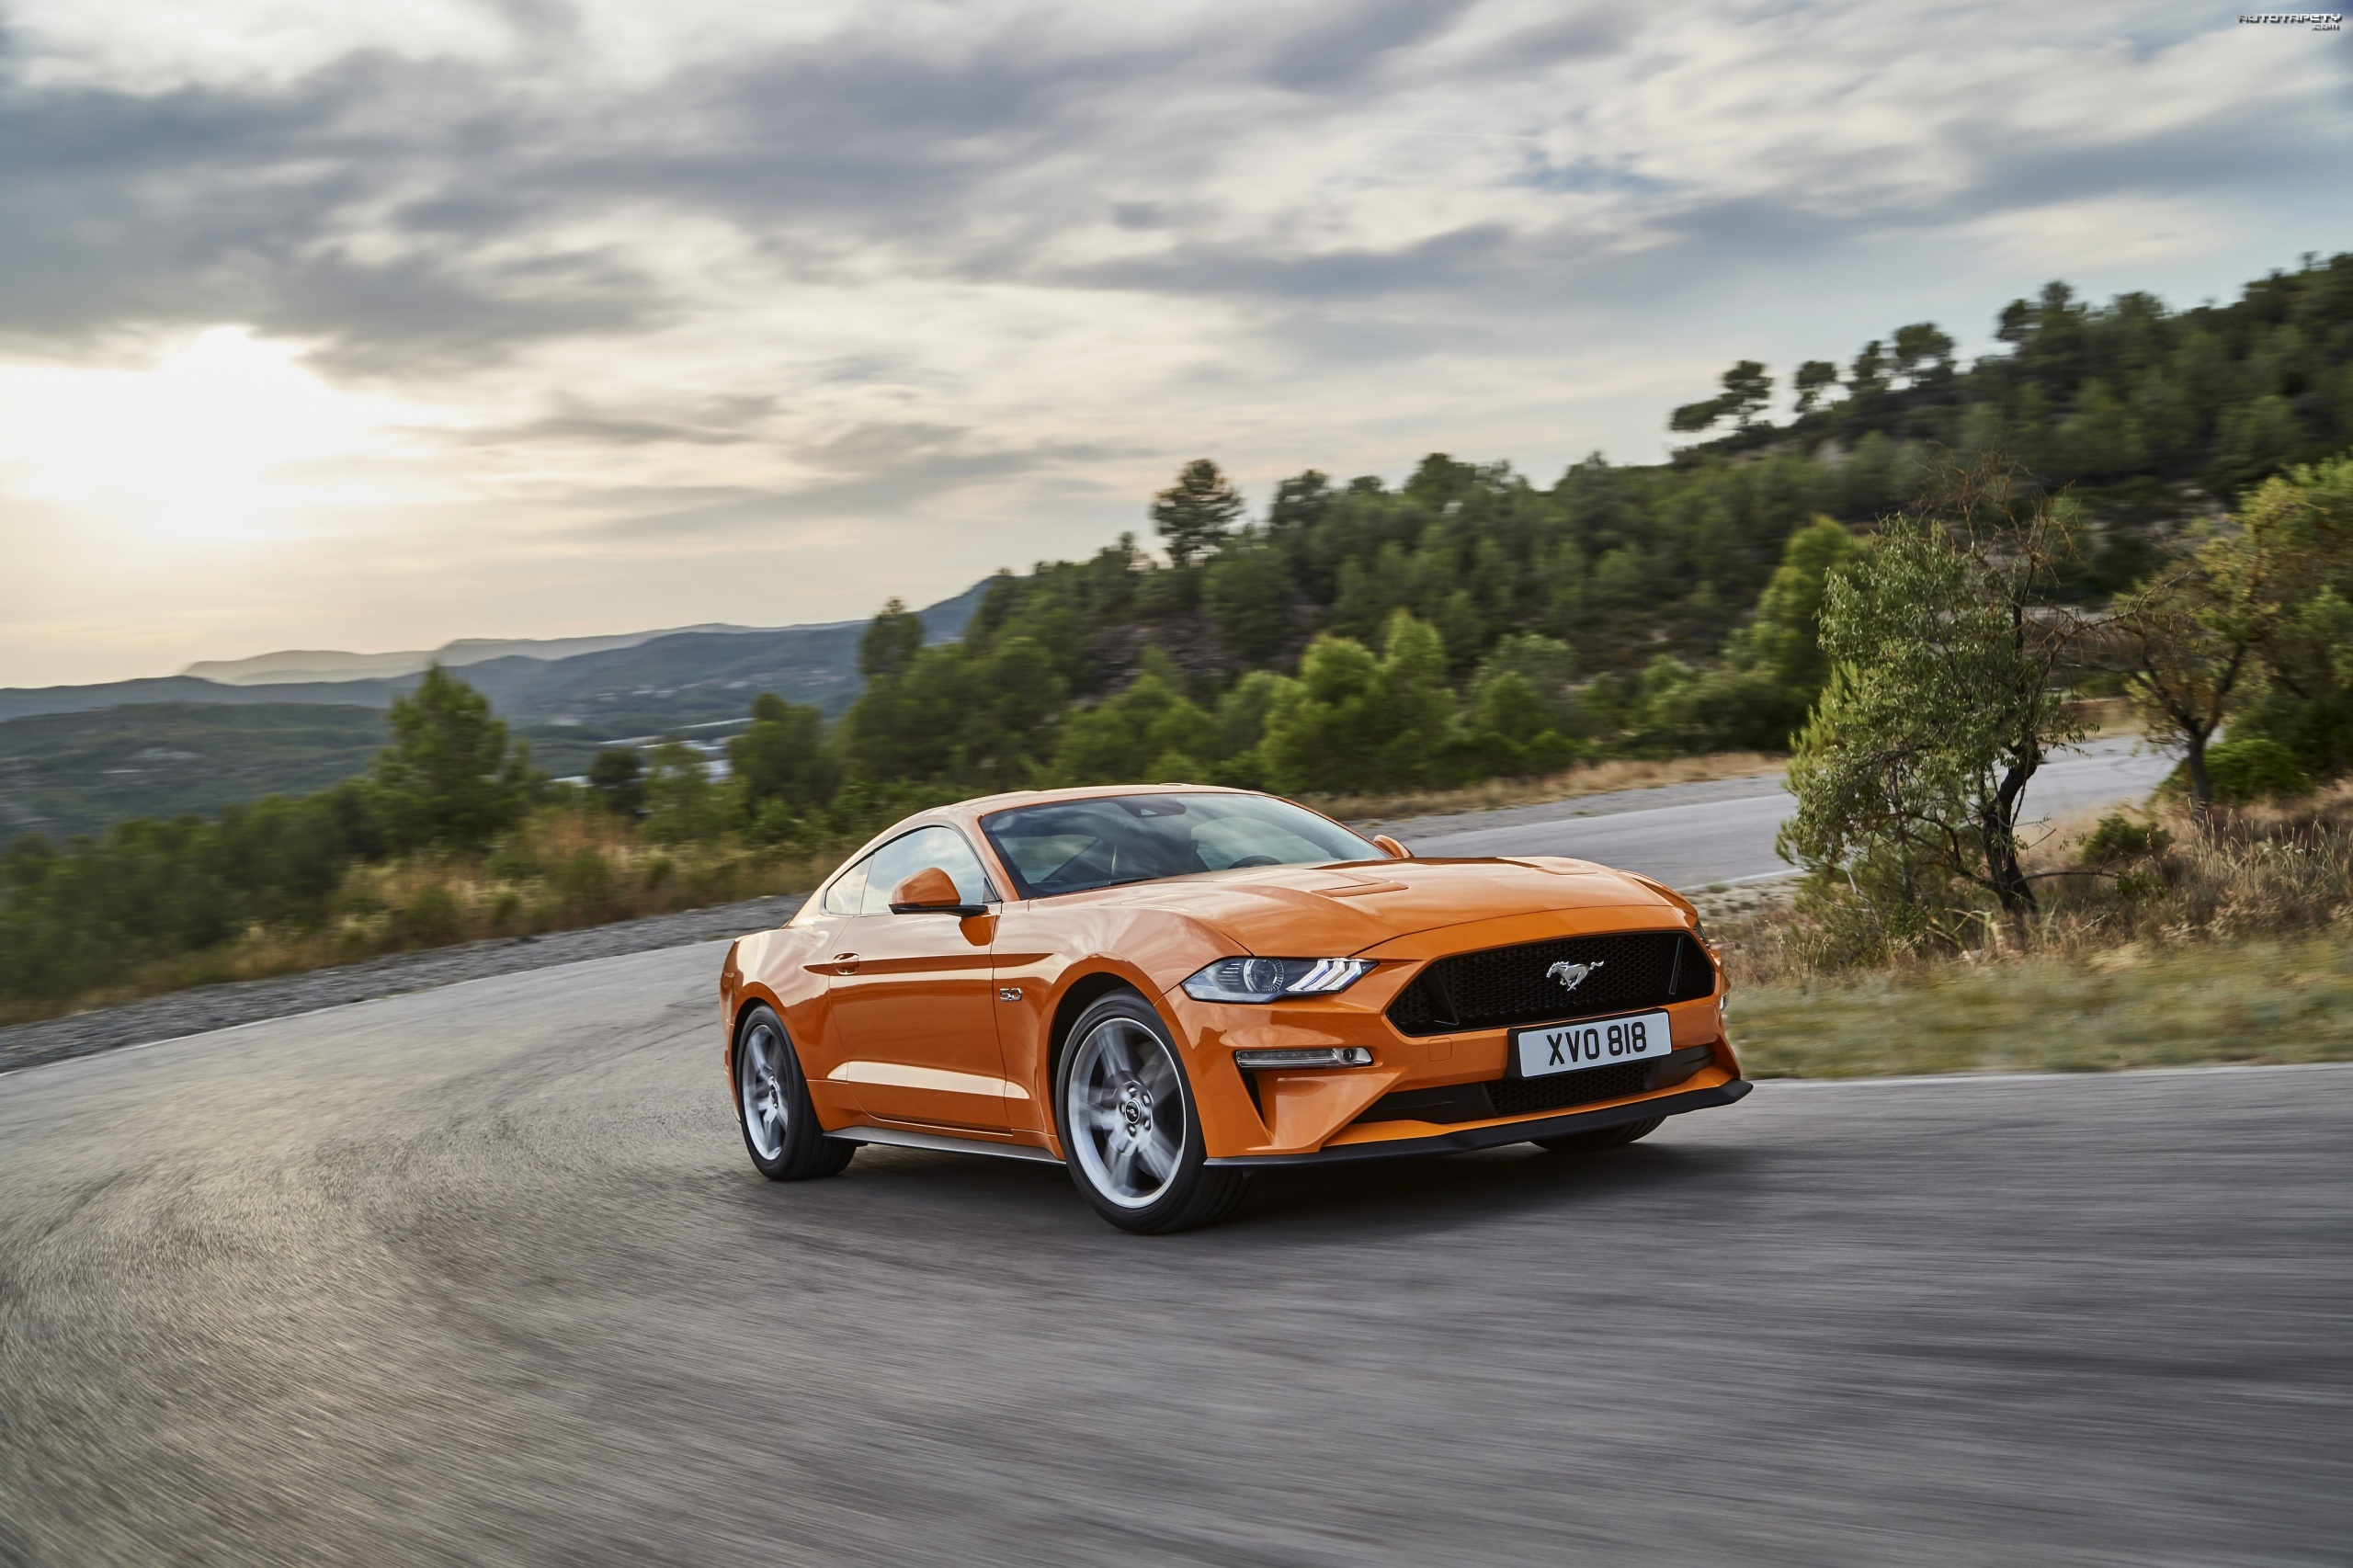 Ford Mustang GT, Droga